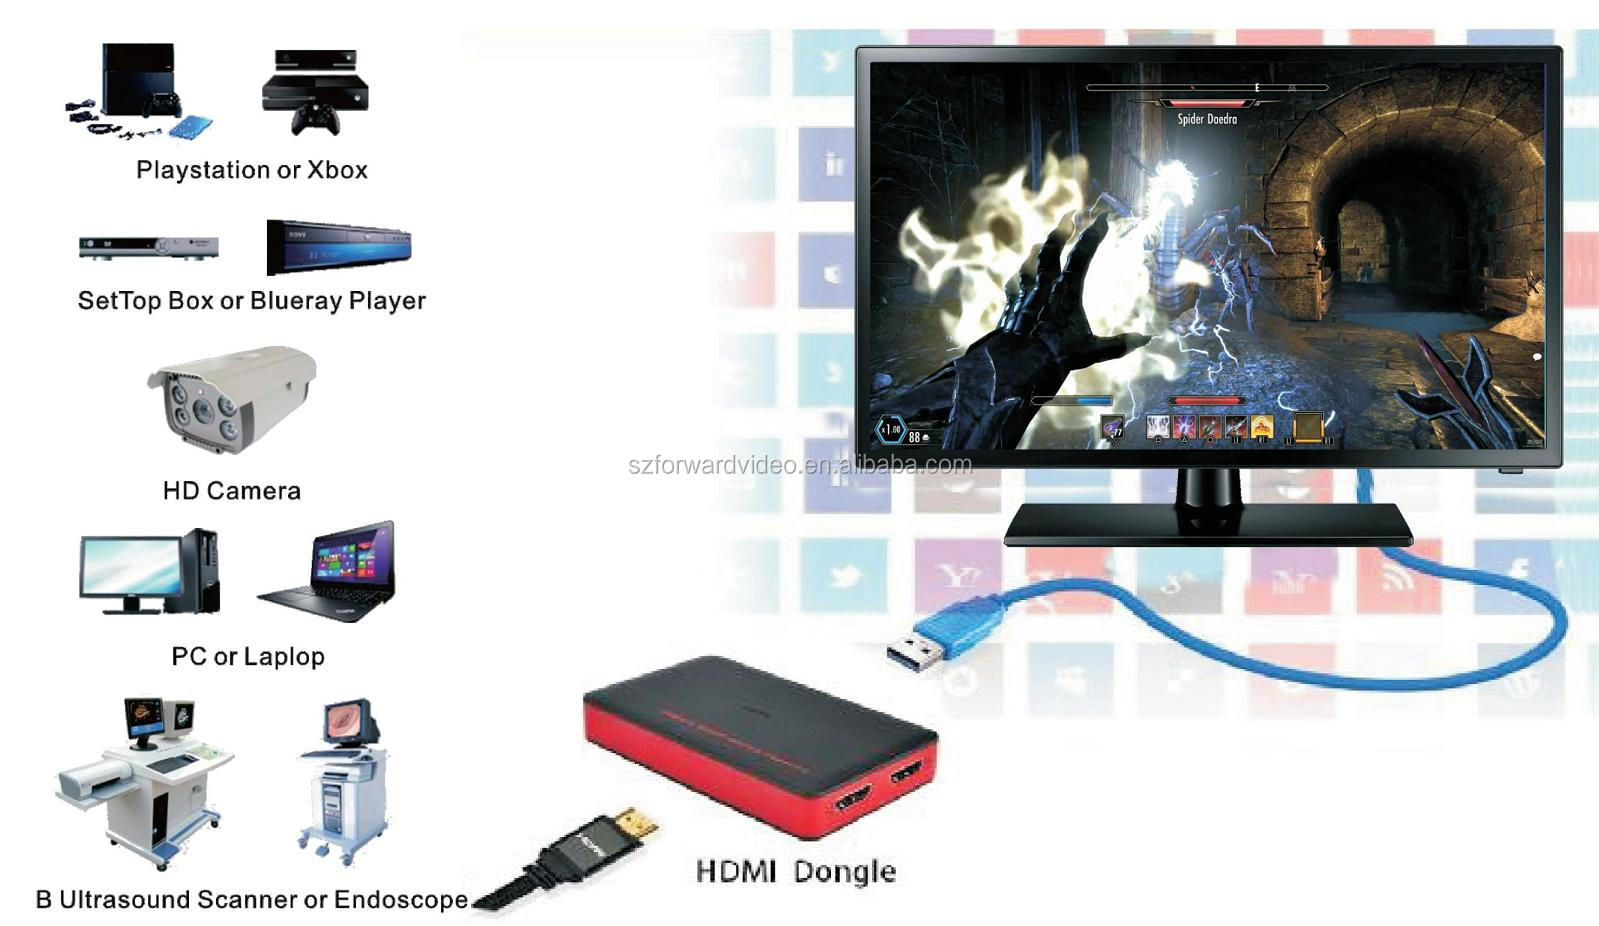 HDMI to USB 3.0 UVC Capture Dongle capture video as 1080P support4K input with HDMI output ezcap261